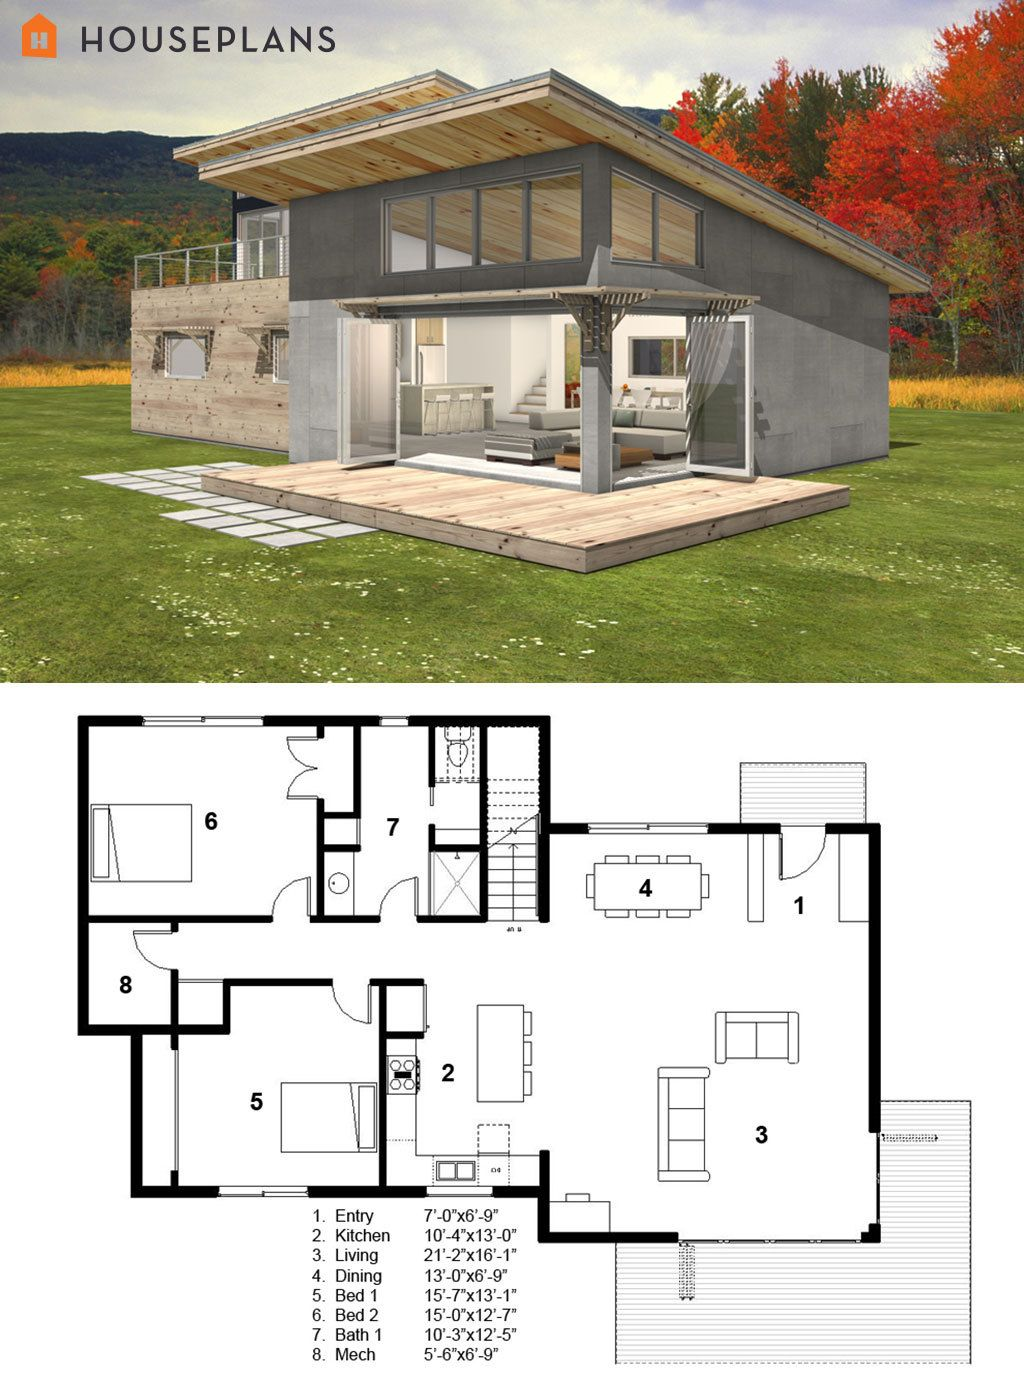 Small modern cabin house plan by freegreen energy for Small house design loft